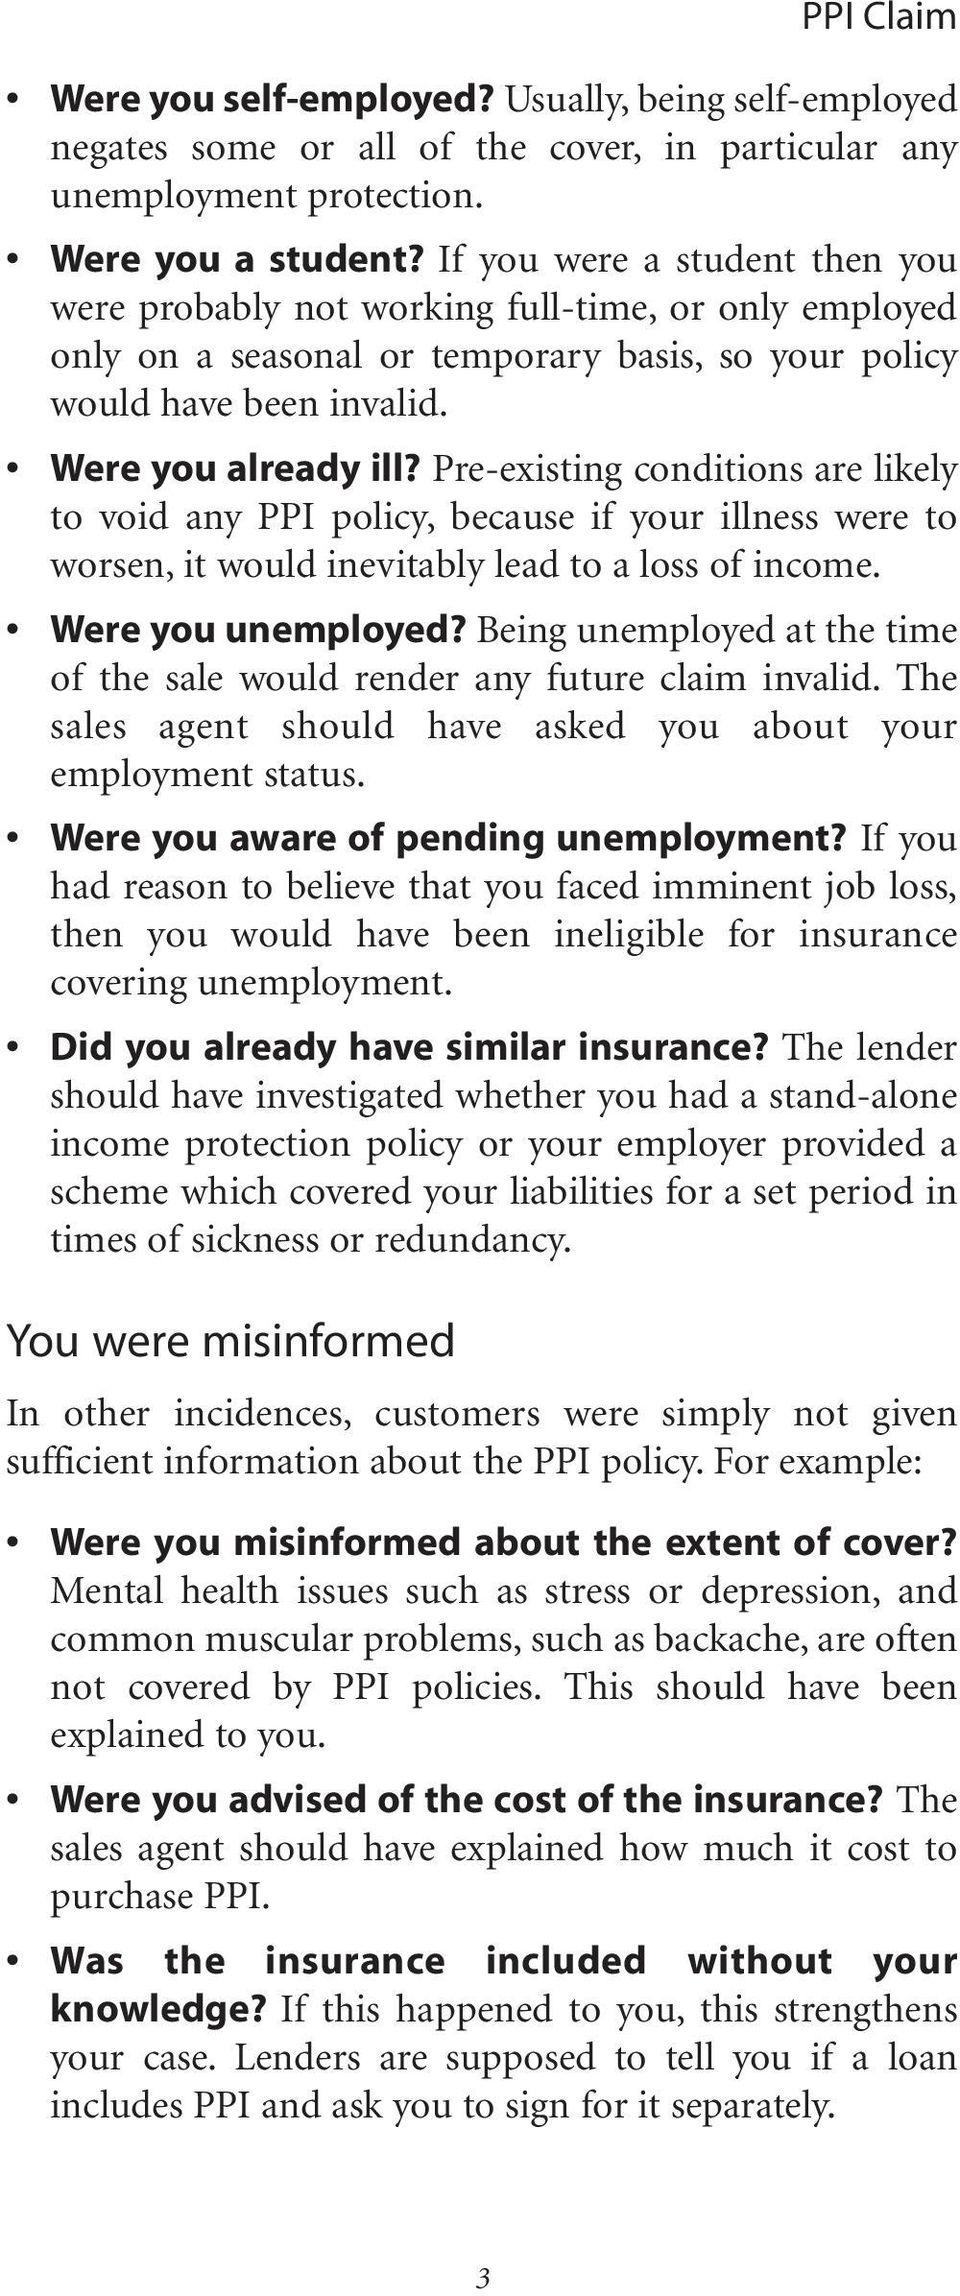 Pre-existing conditions are likely to void any PPI policy, because if your illness were to worsen, it would inevitably lead to a loss of income. Were you unemployed?